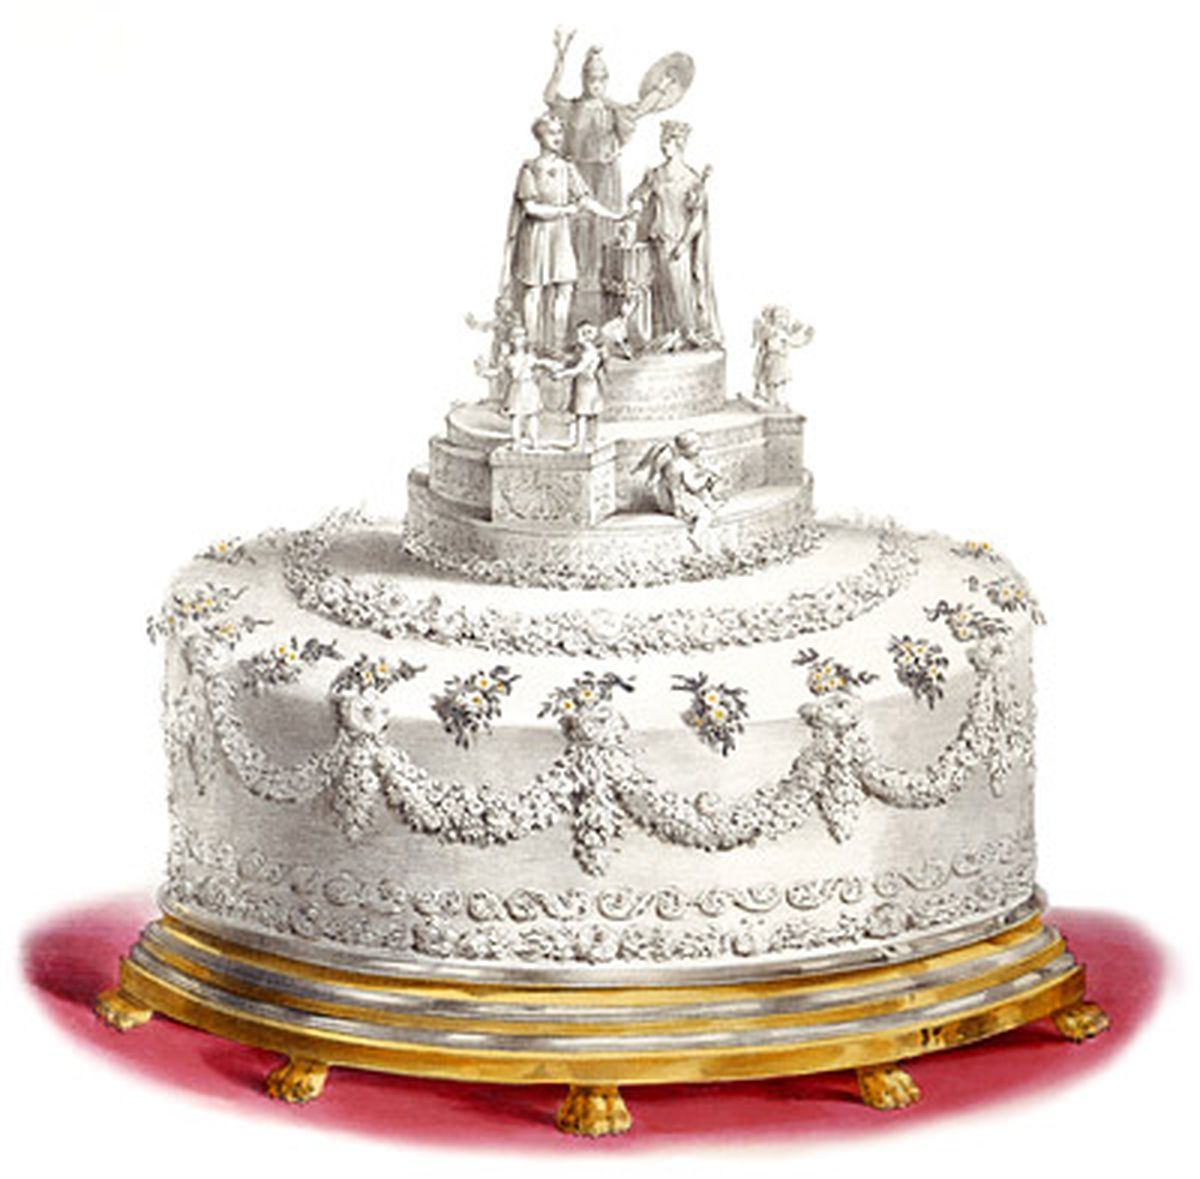 British Royal Wedding Cakes: British Royal Wedding Cakes Over The Years